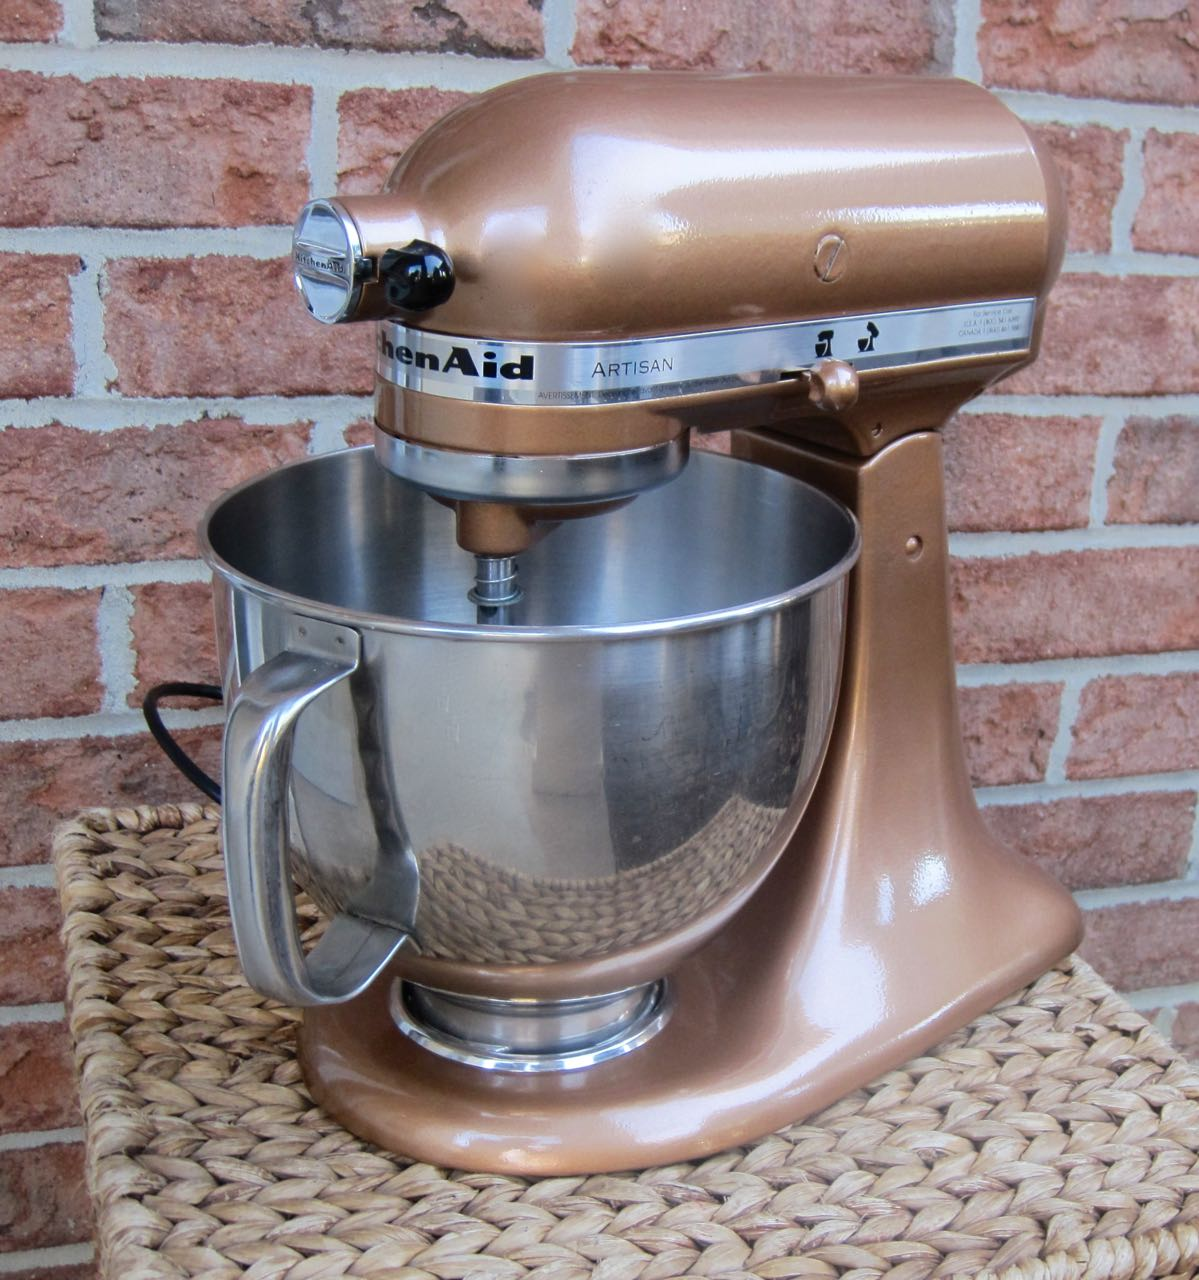 Painting Kitchen Aid Mixer. Give Your Paint 24 Hours To Dry Before You Add The Hardware Back On And Another 24 Hours At The Least Before You Handleuse Your Mixer